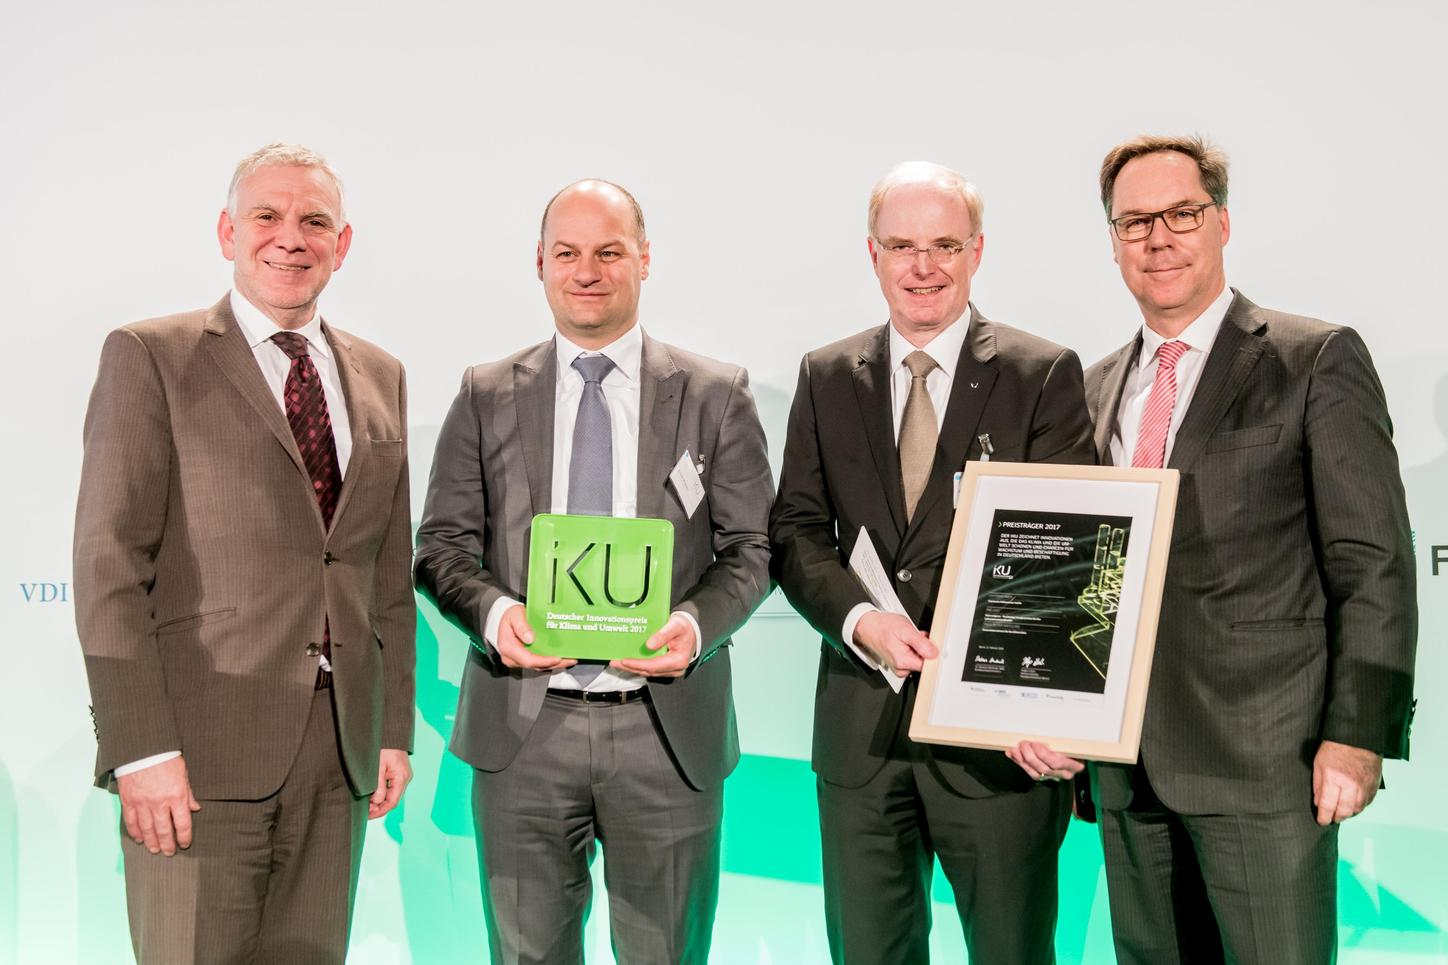 The picture shows the presentation of the IKU-Award.